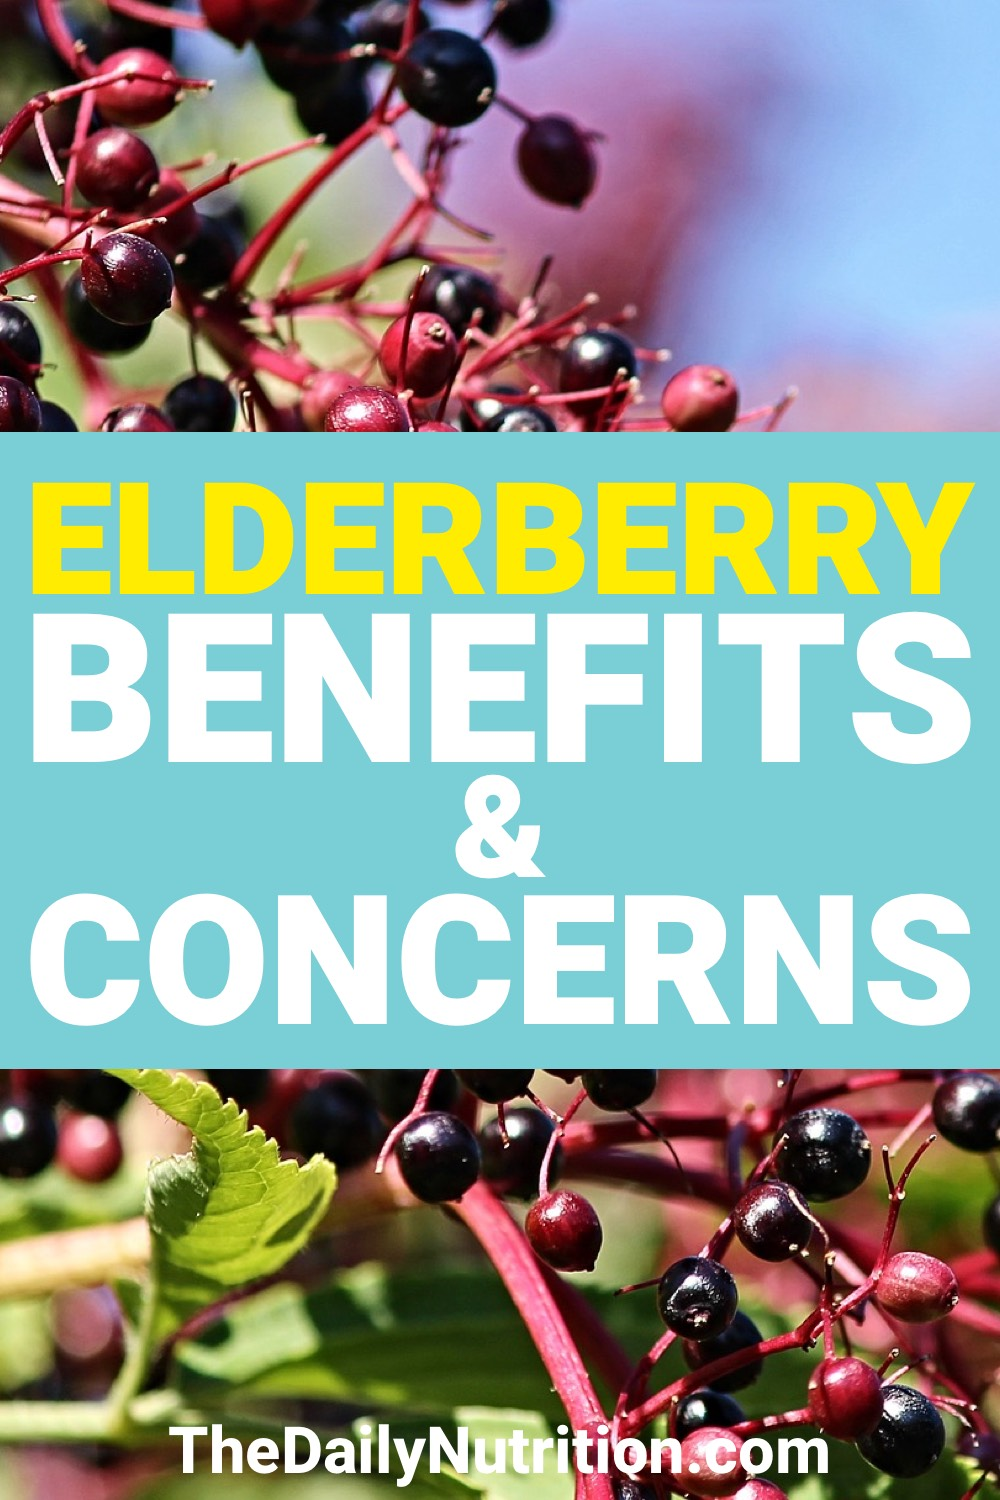 The elderberry has been used for medicine for thousands of years. Find out the elderberry benefits here.